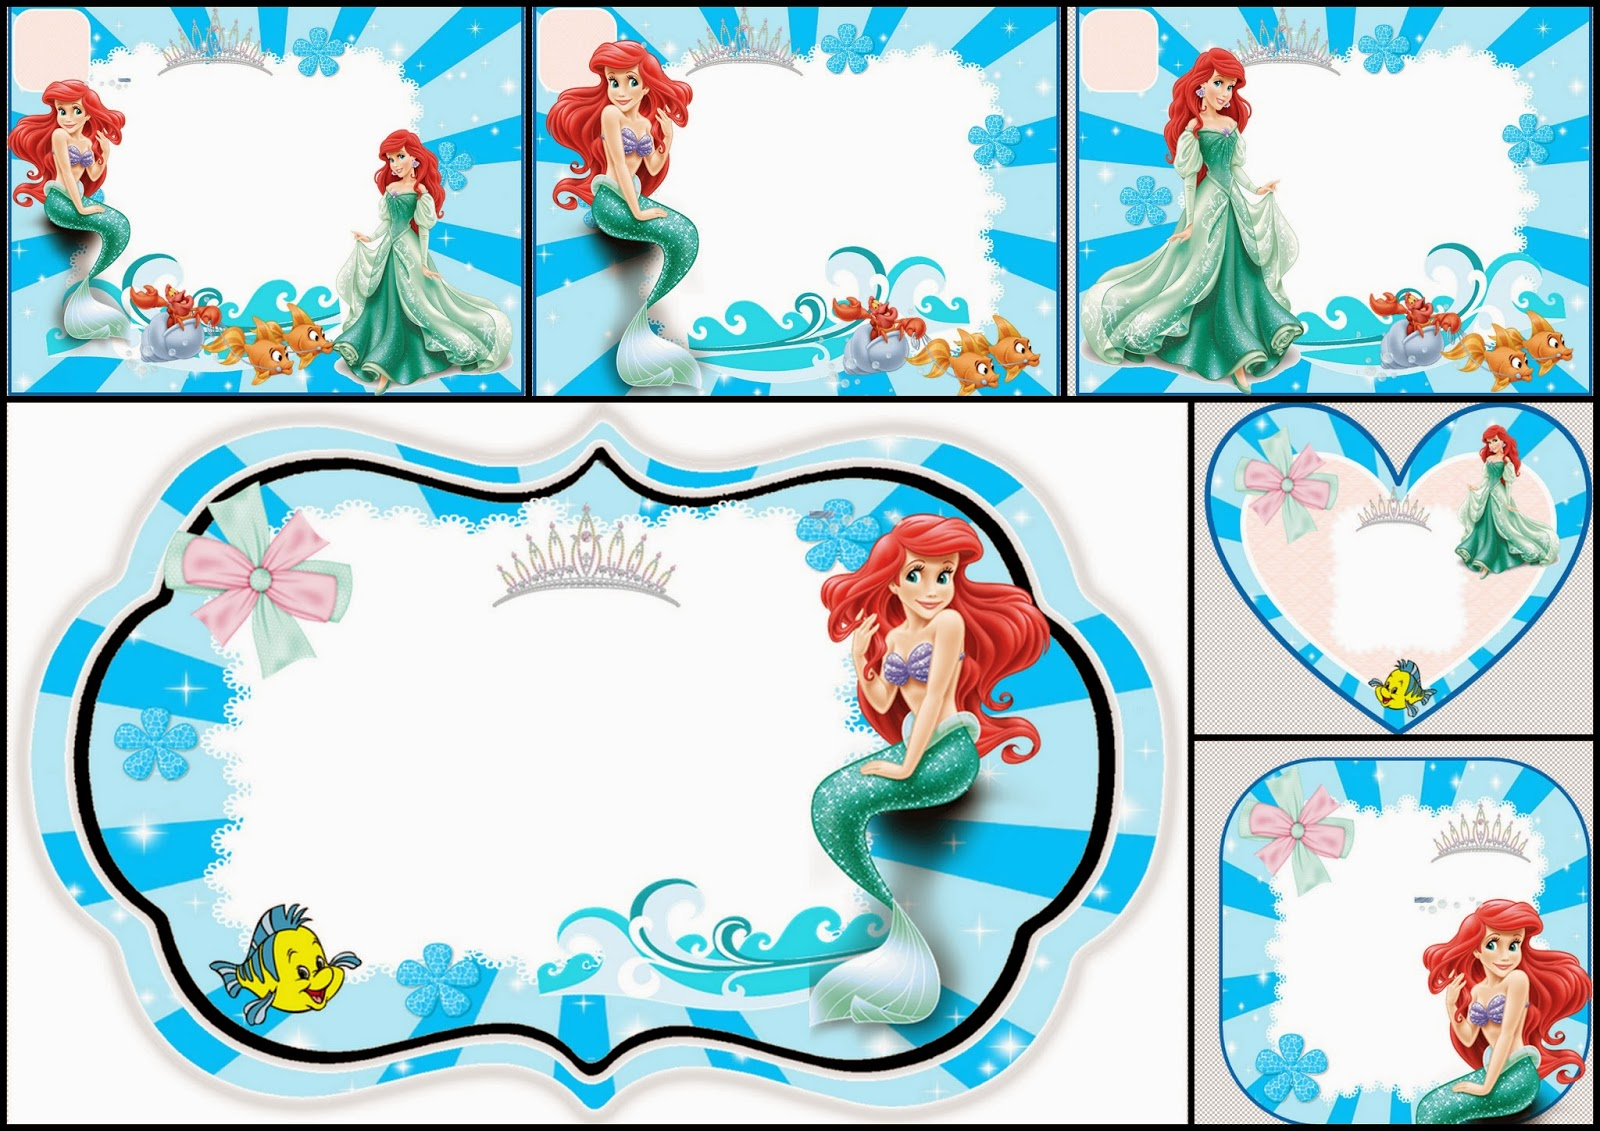 Ariel birthday invitations printable menshealtharts the little mermaid free printable invitations cards or photo frames oh my fiesta in english filmwisefo